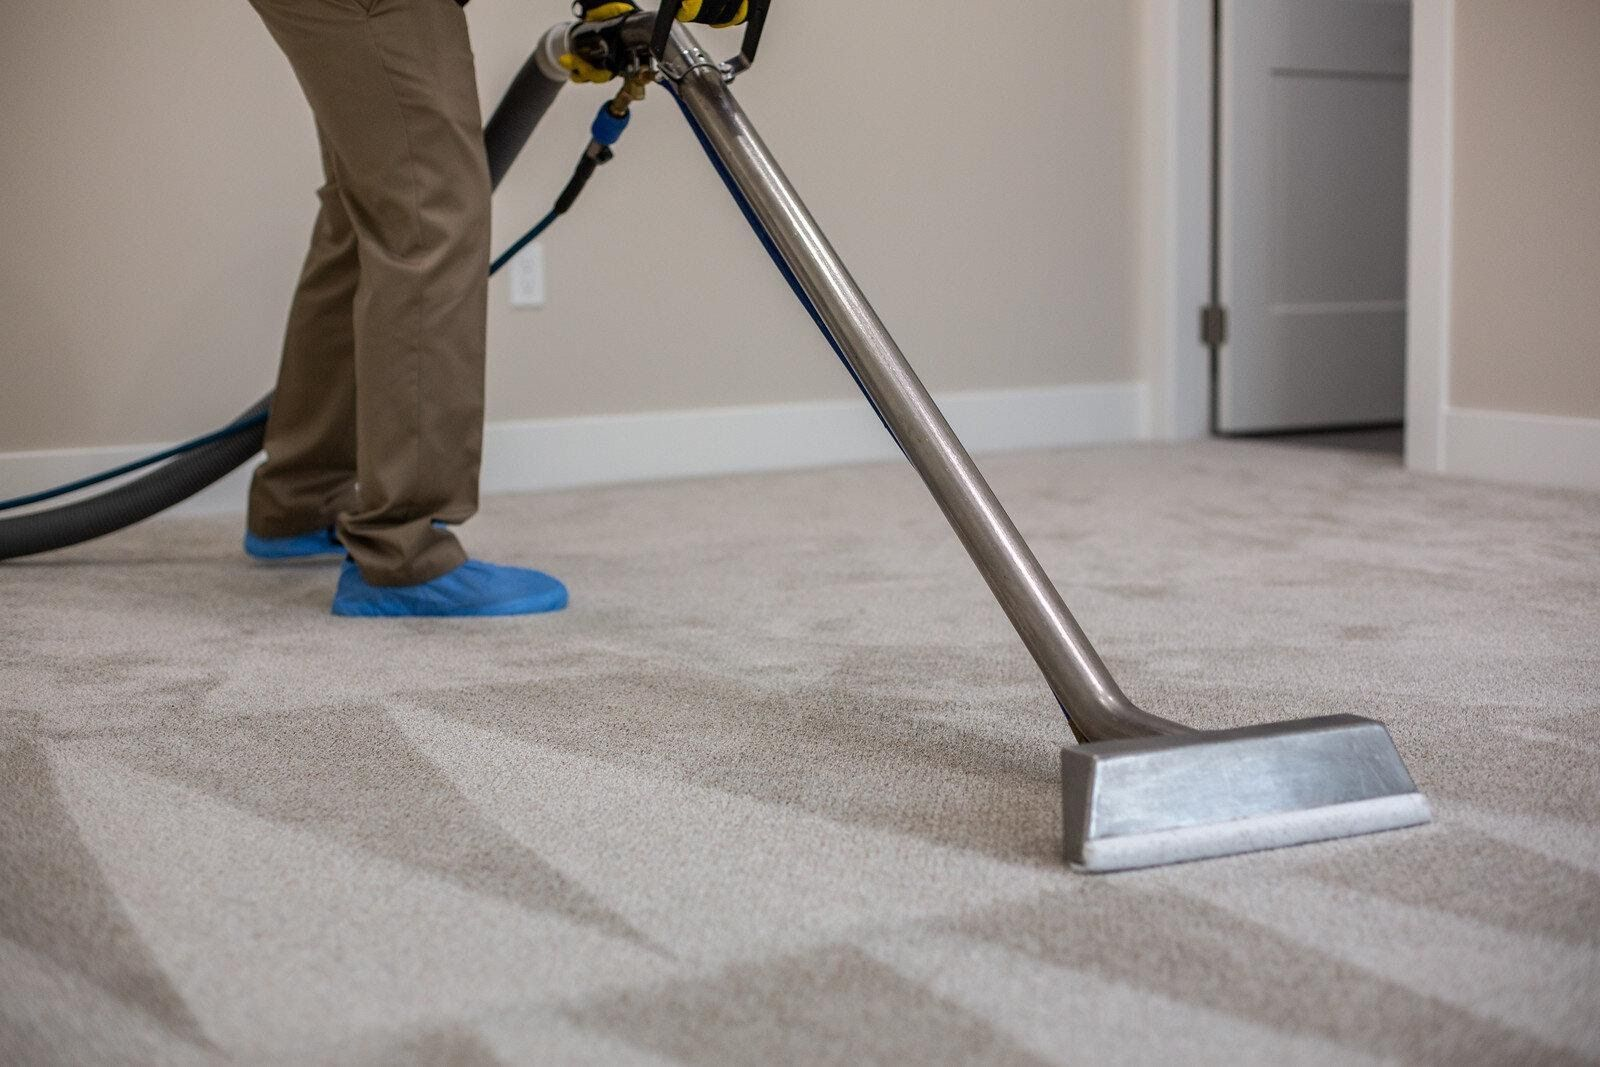 Five Preparations You Should Make Before Using Carpet Steam Cleaning Services In 2020 Steam Clean Carpet How To Clean Carpet Steam Cleaning